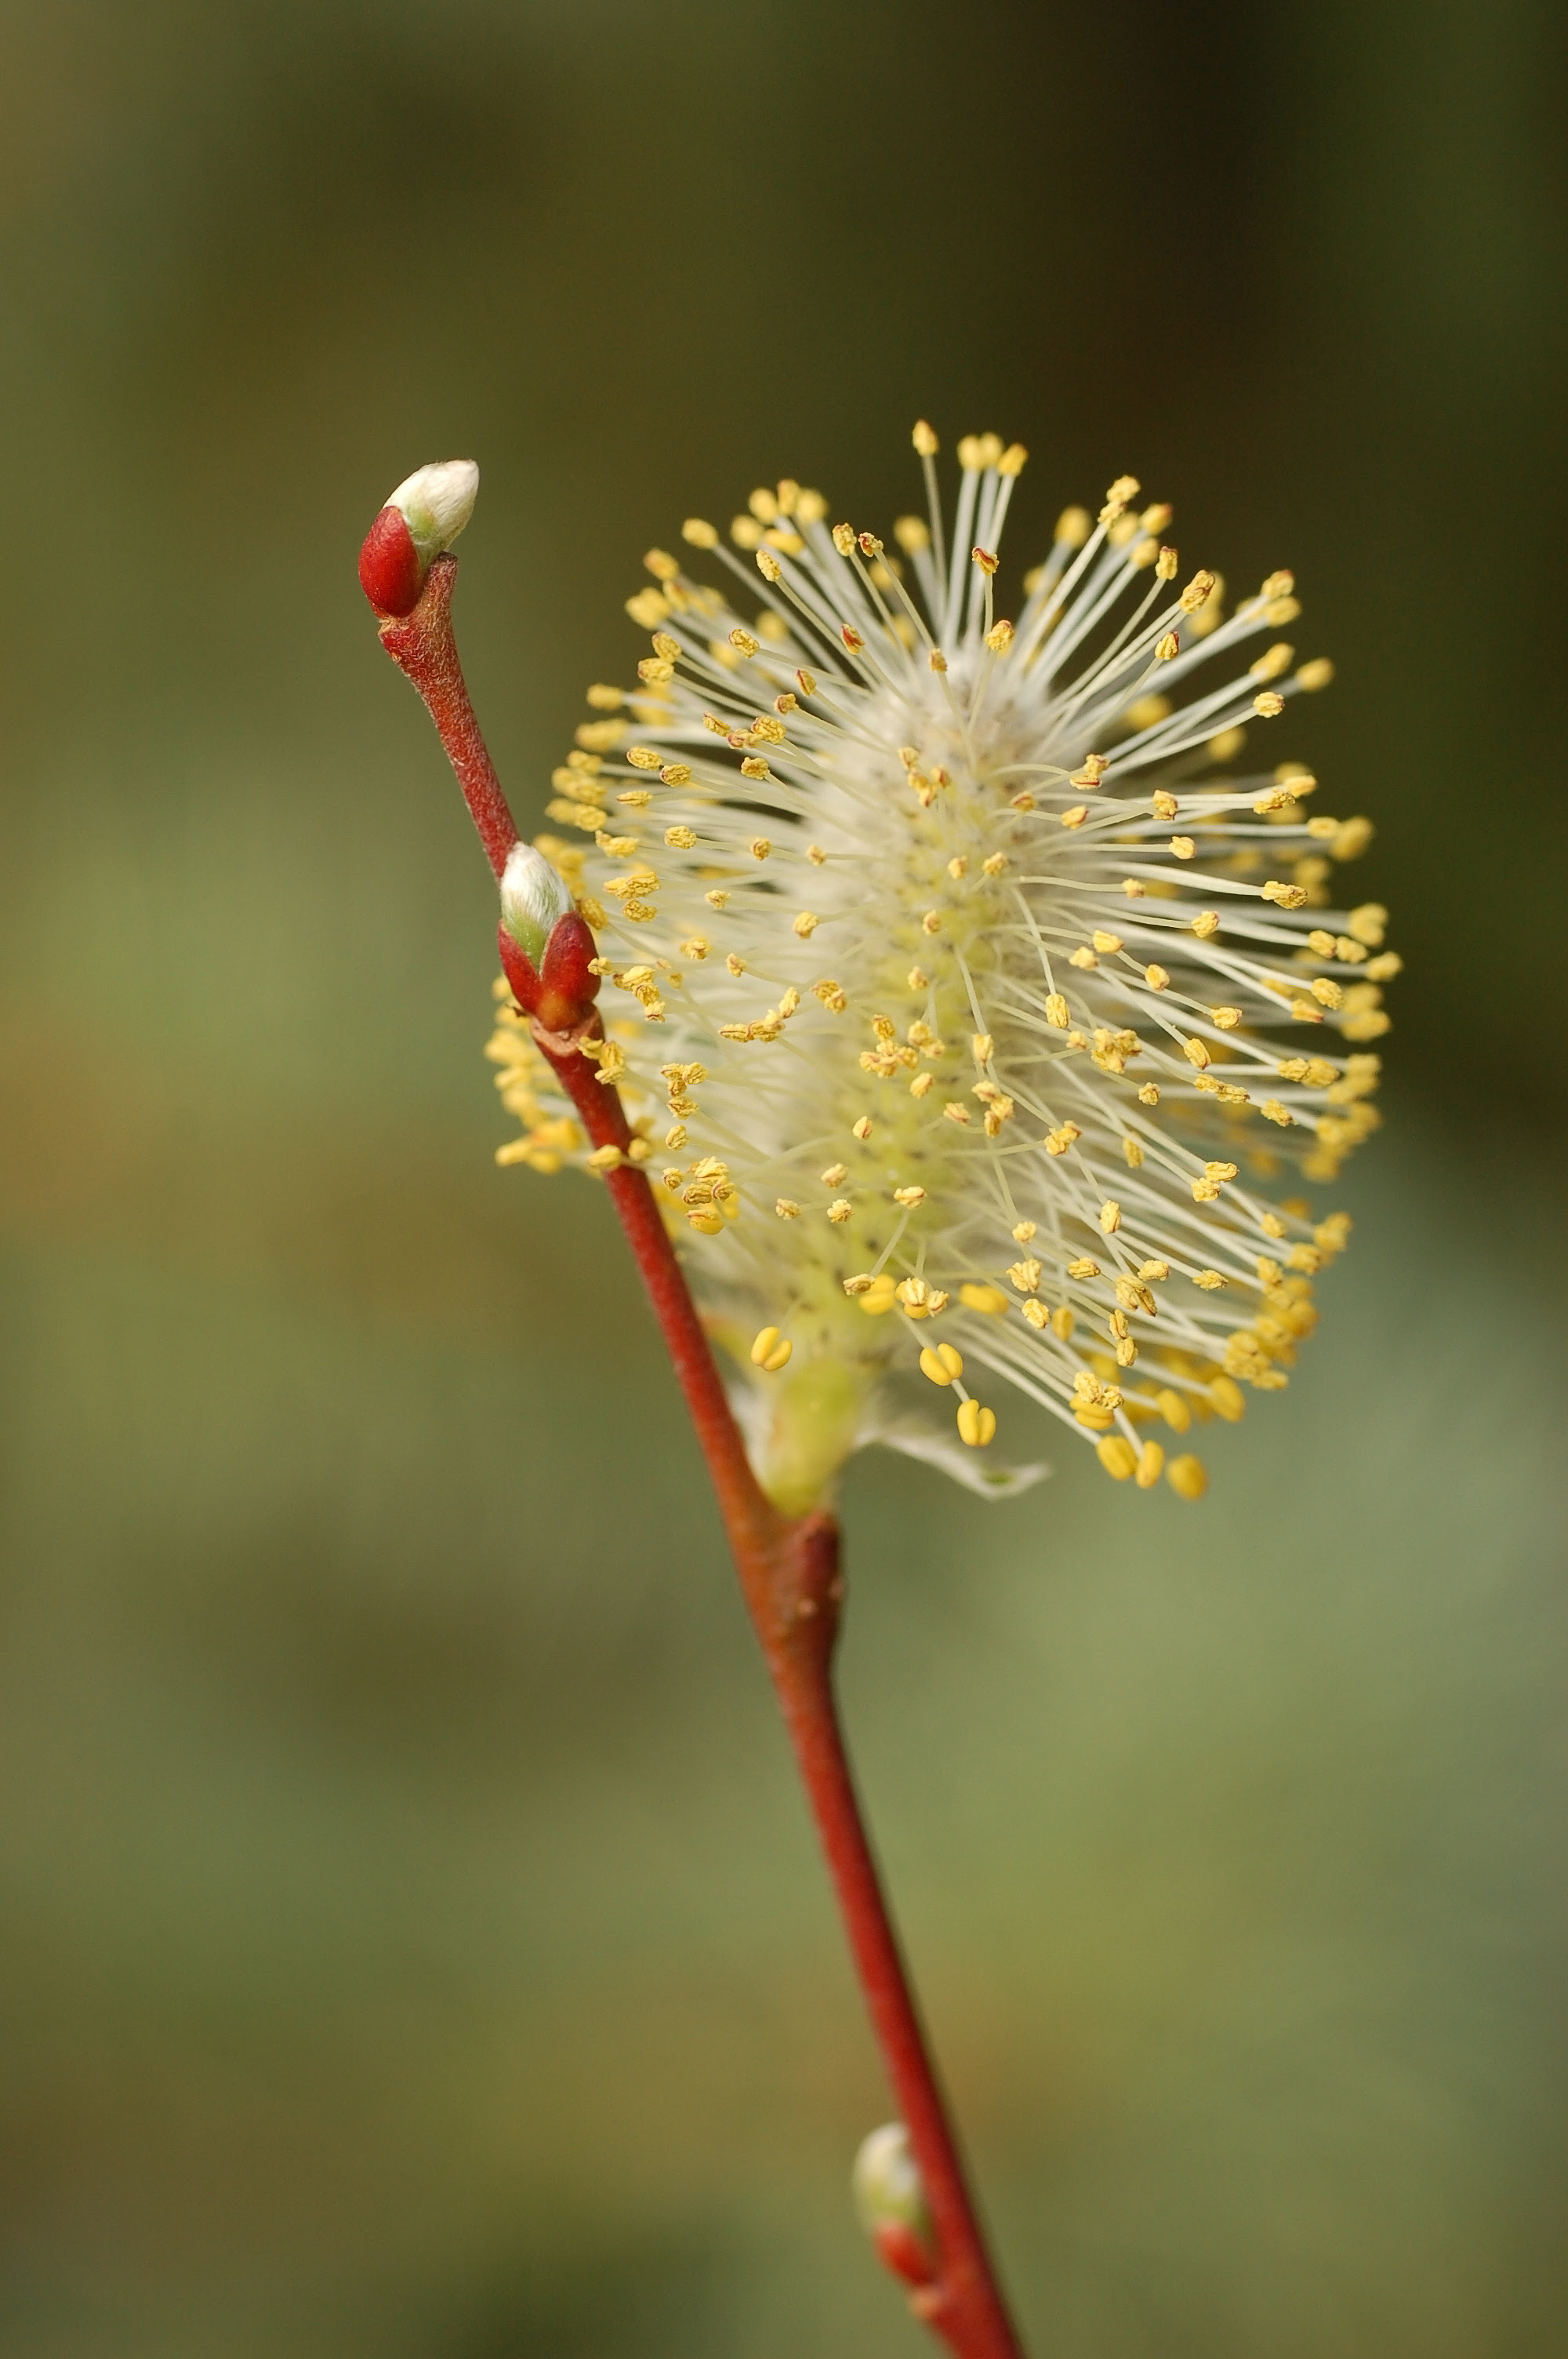 http://upload.wikimedia.org/wikipedia/commons/9/9b/Pussy_Willow_Stem_2000px.jpg